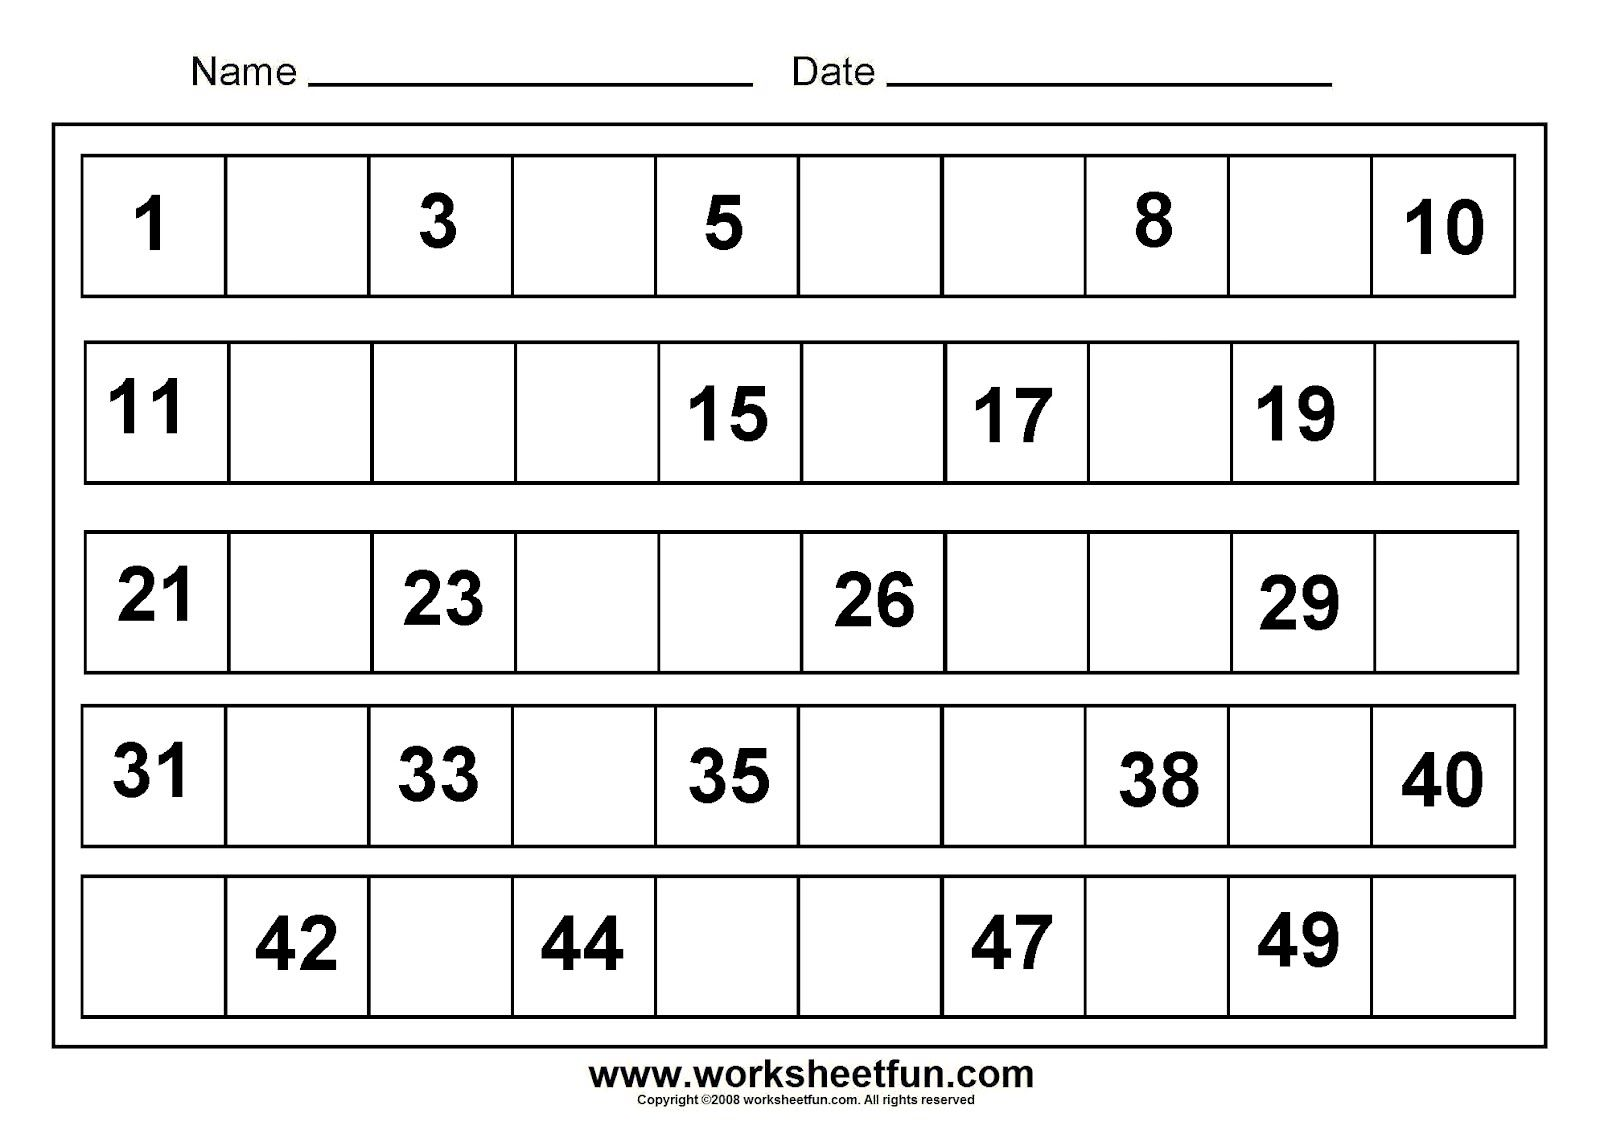 math worksheet : 1000 images about work sheets on pinterest  math worksheets  : Maths Kindergarten Worksheets